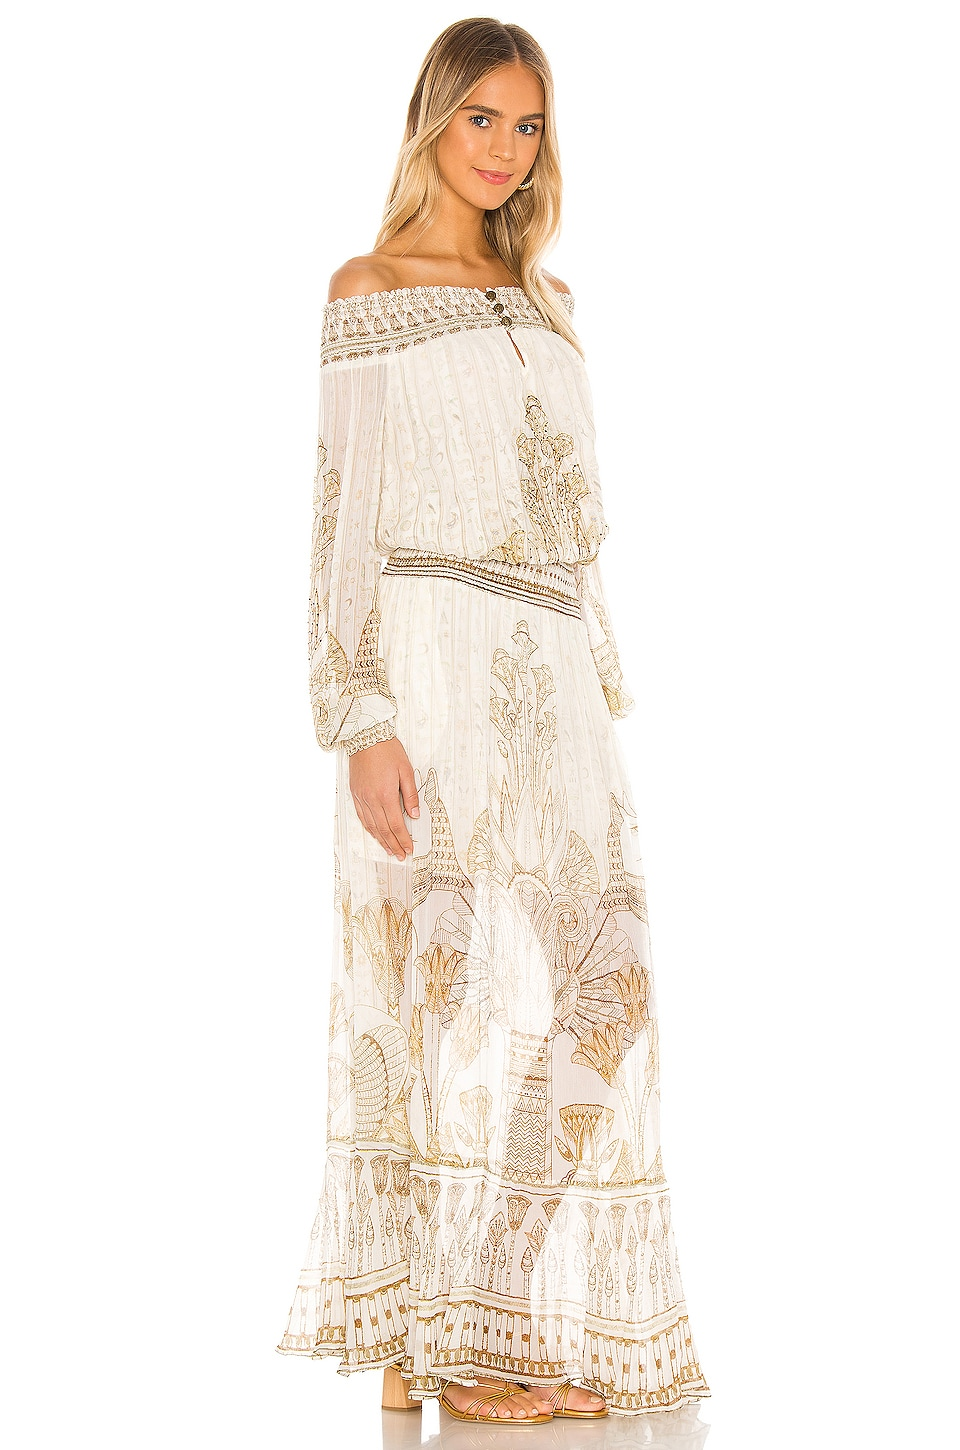 Off Shoulder Shirred Dress, view 2, click to view large image.